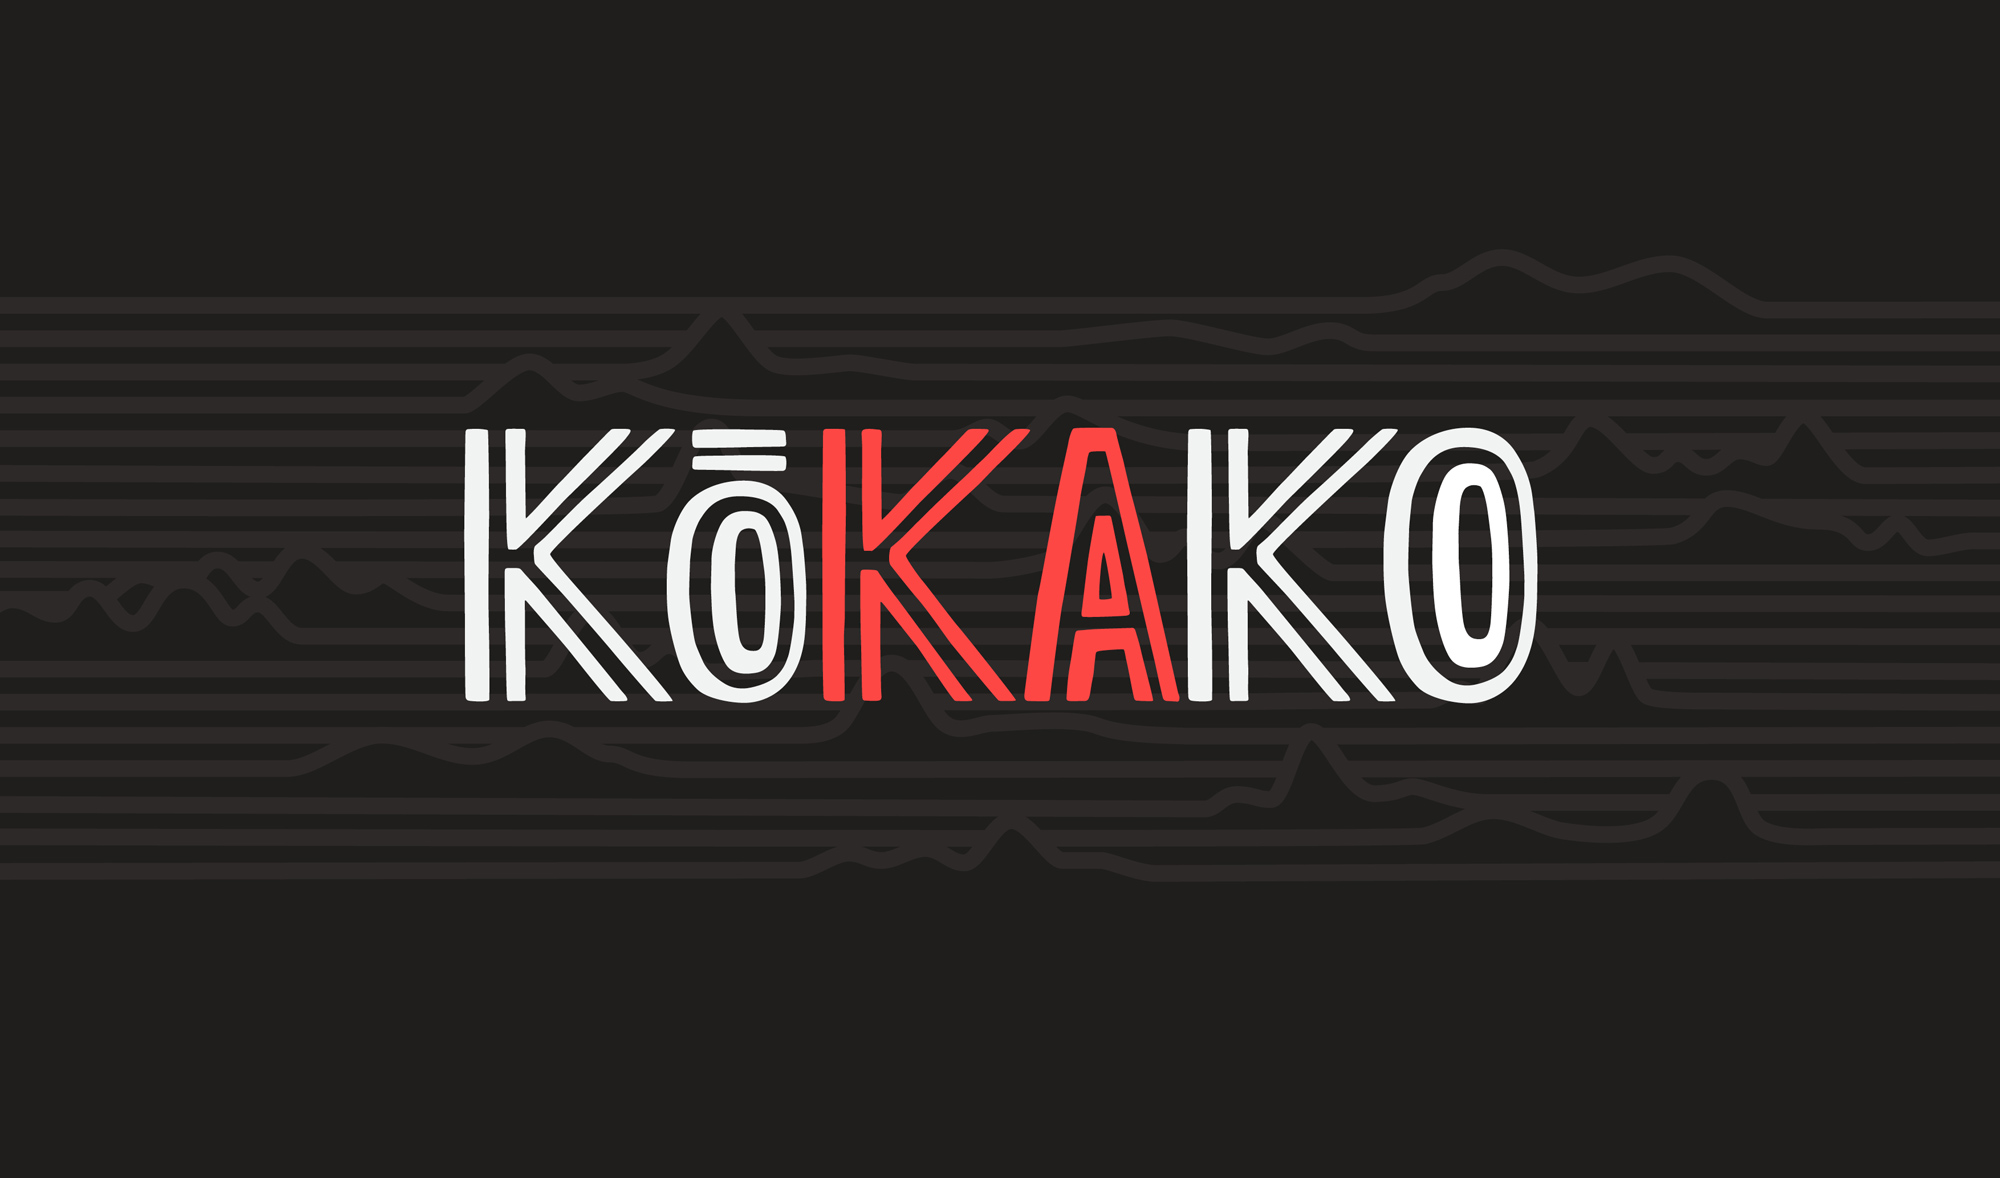 Kōkako measures the use of te reo on the radio. The identity is inspired by Māori visual motifs. The work won a Purple Pin at the Best Awards. Designed with Salted Herring.